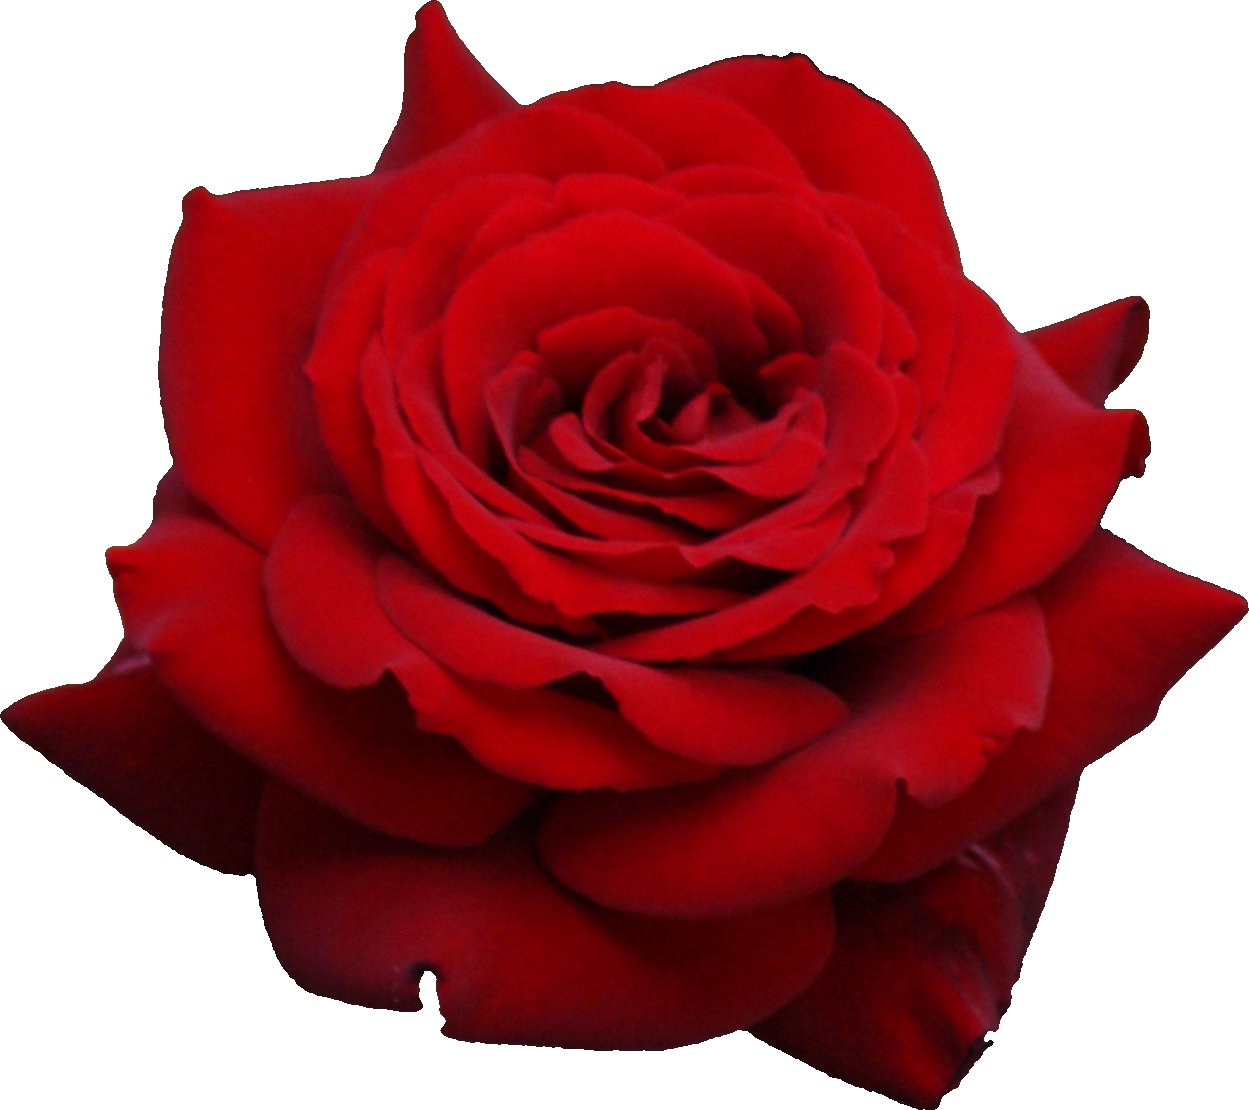 Rose png. Flower images free download